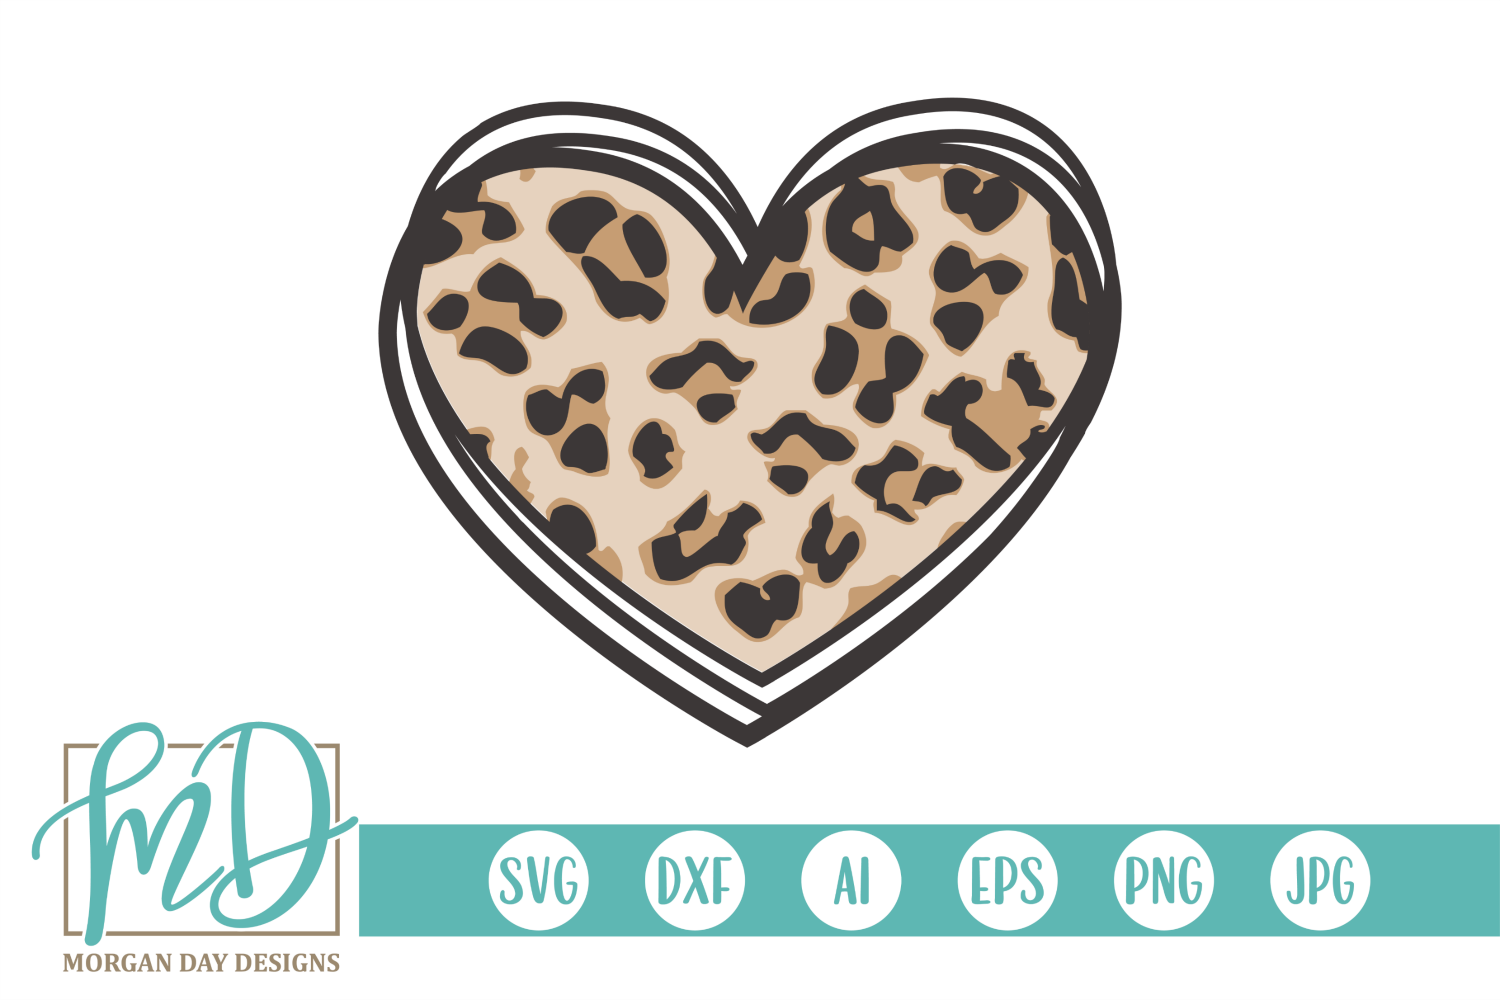 Download Free Leopard Heart Graphic By Morgan Day Designs Creative Fabrica for Cricut Explore, Silhouette and other cutting machines.